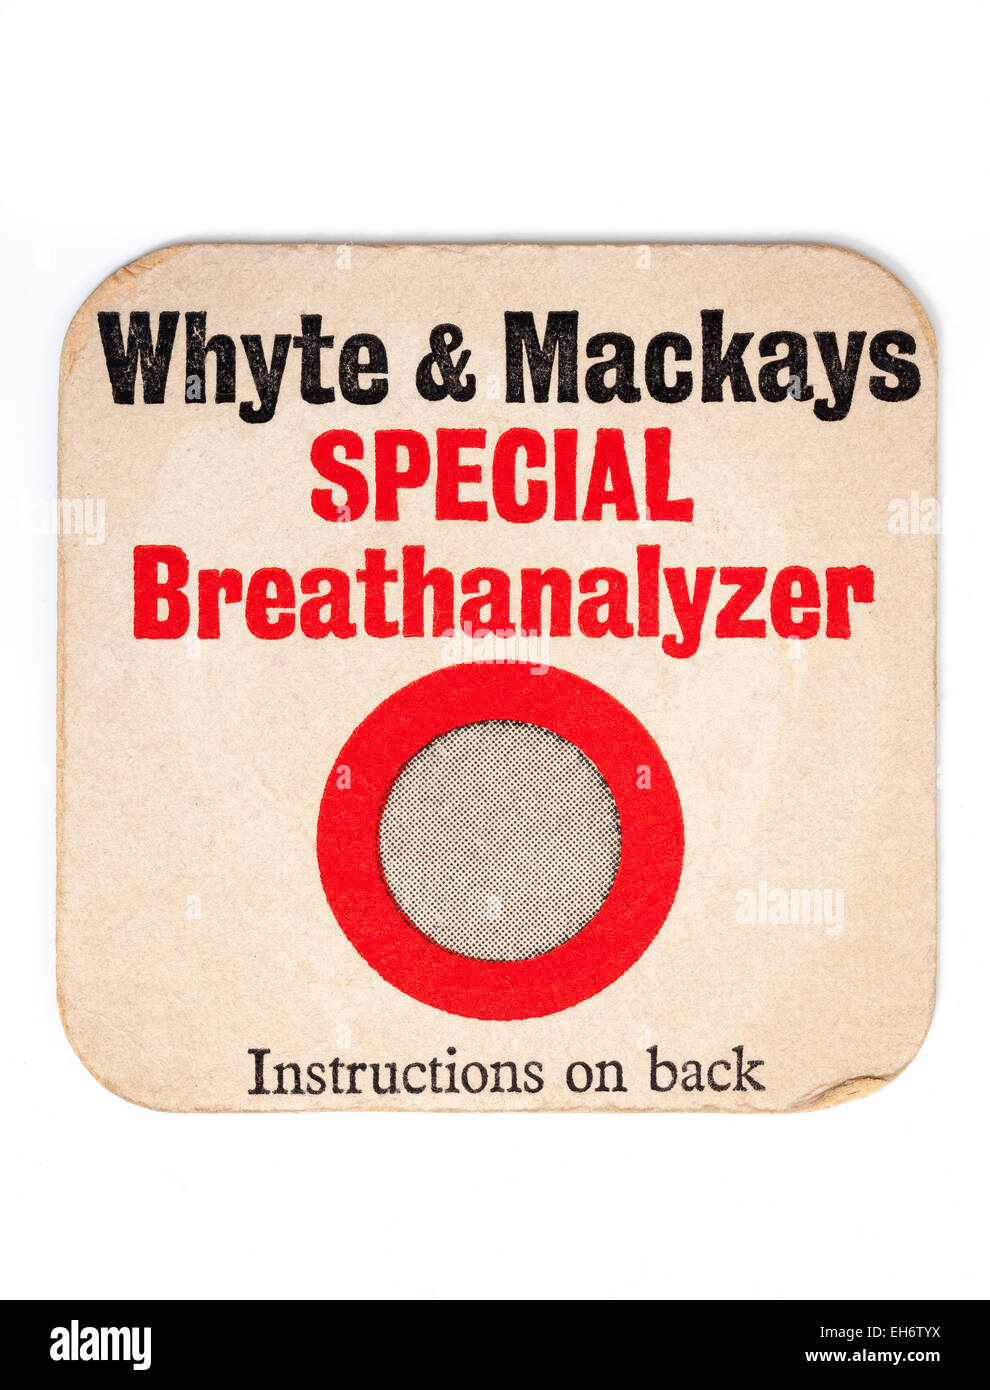 Vintage British Beermat Advertising Whyte and Mackays Whisky - Stock Image